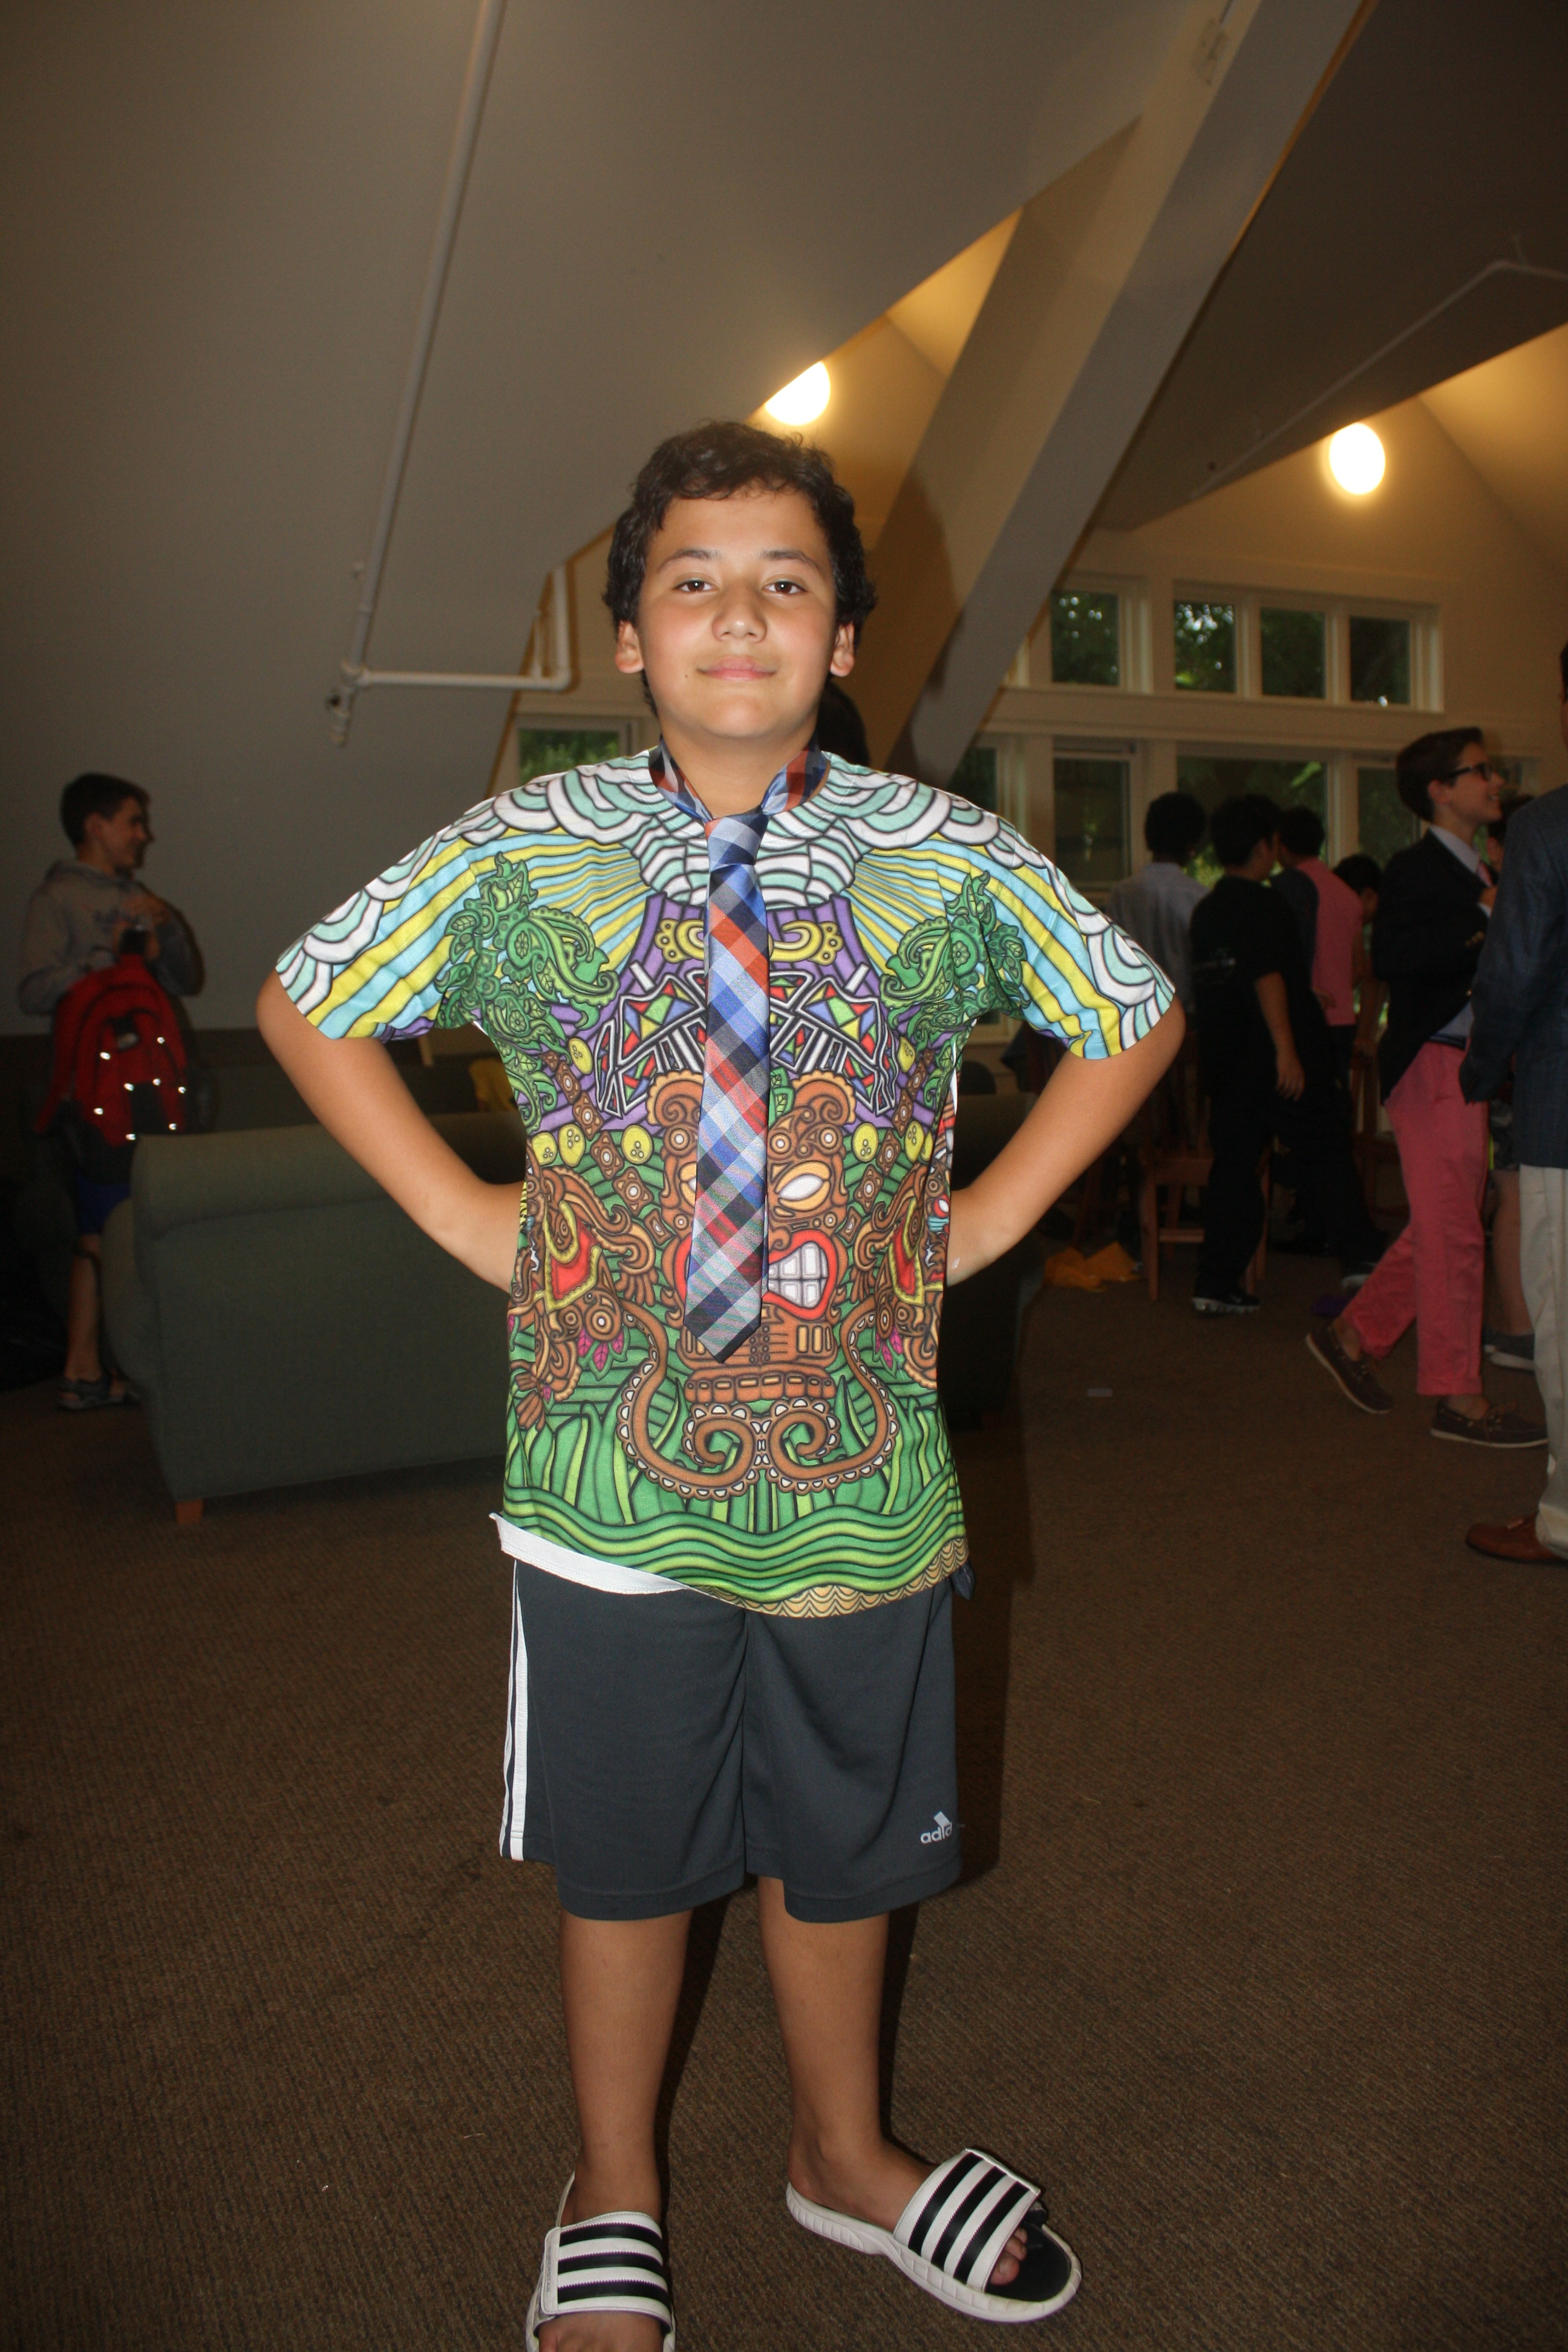 Spencer wears unique attire to our Experimentory Dance